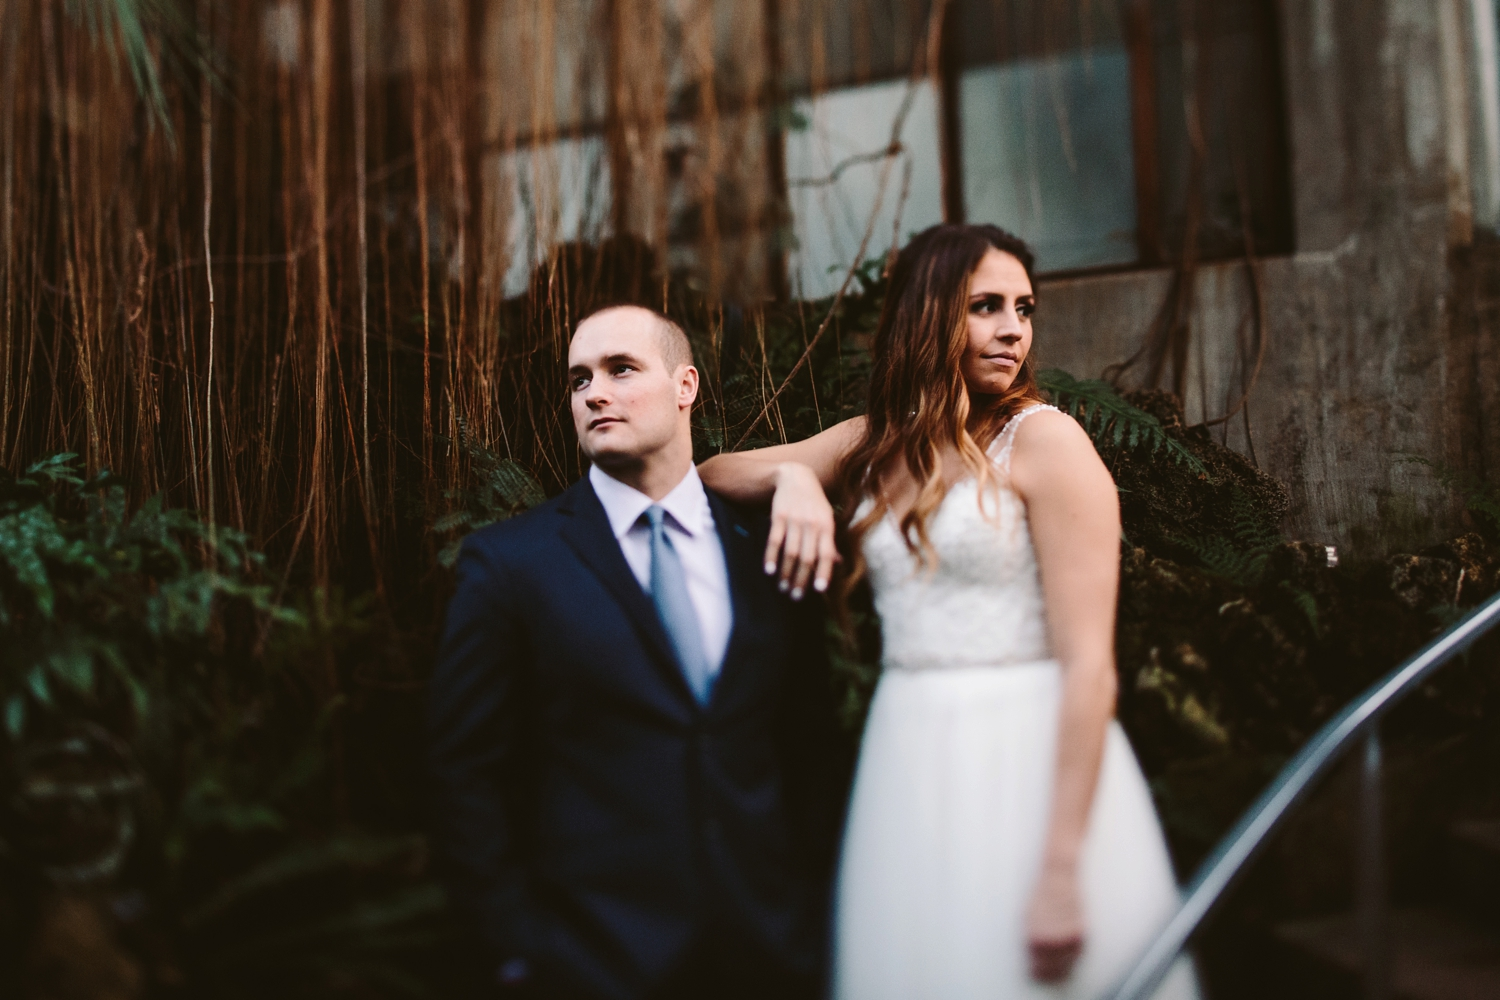 edgy and moody couple that eloped in a conservatory in minneapolis minnesota